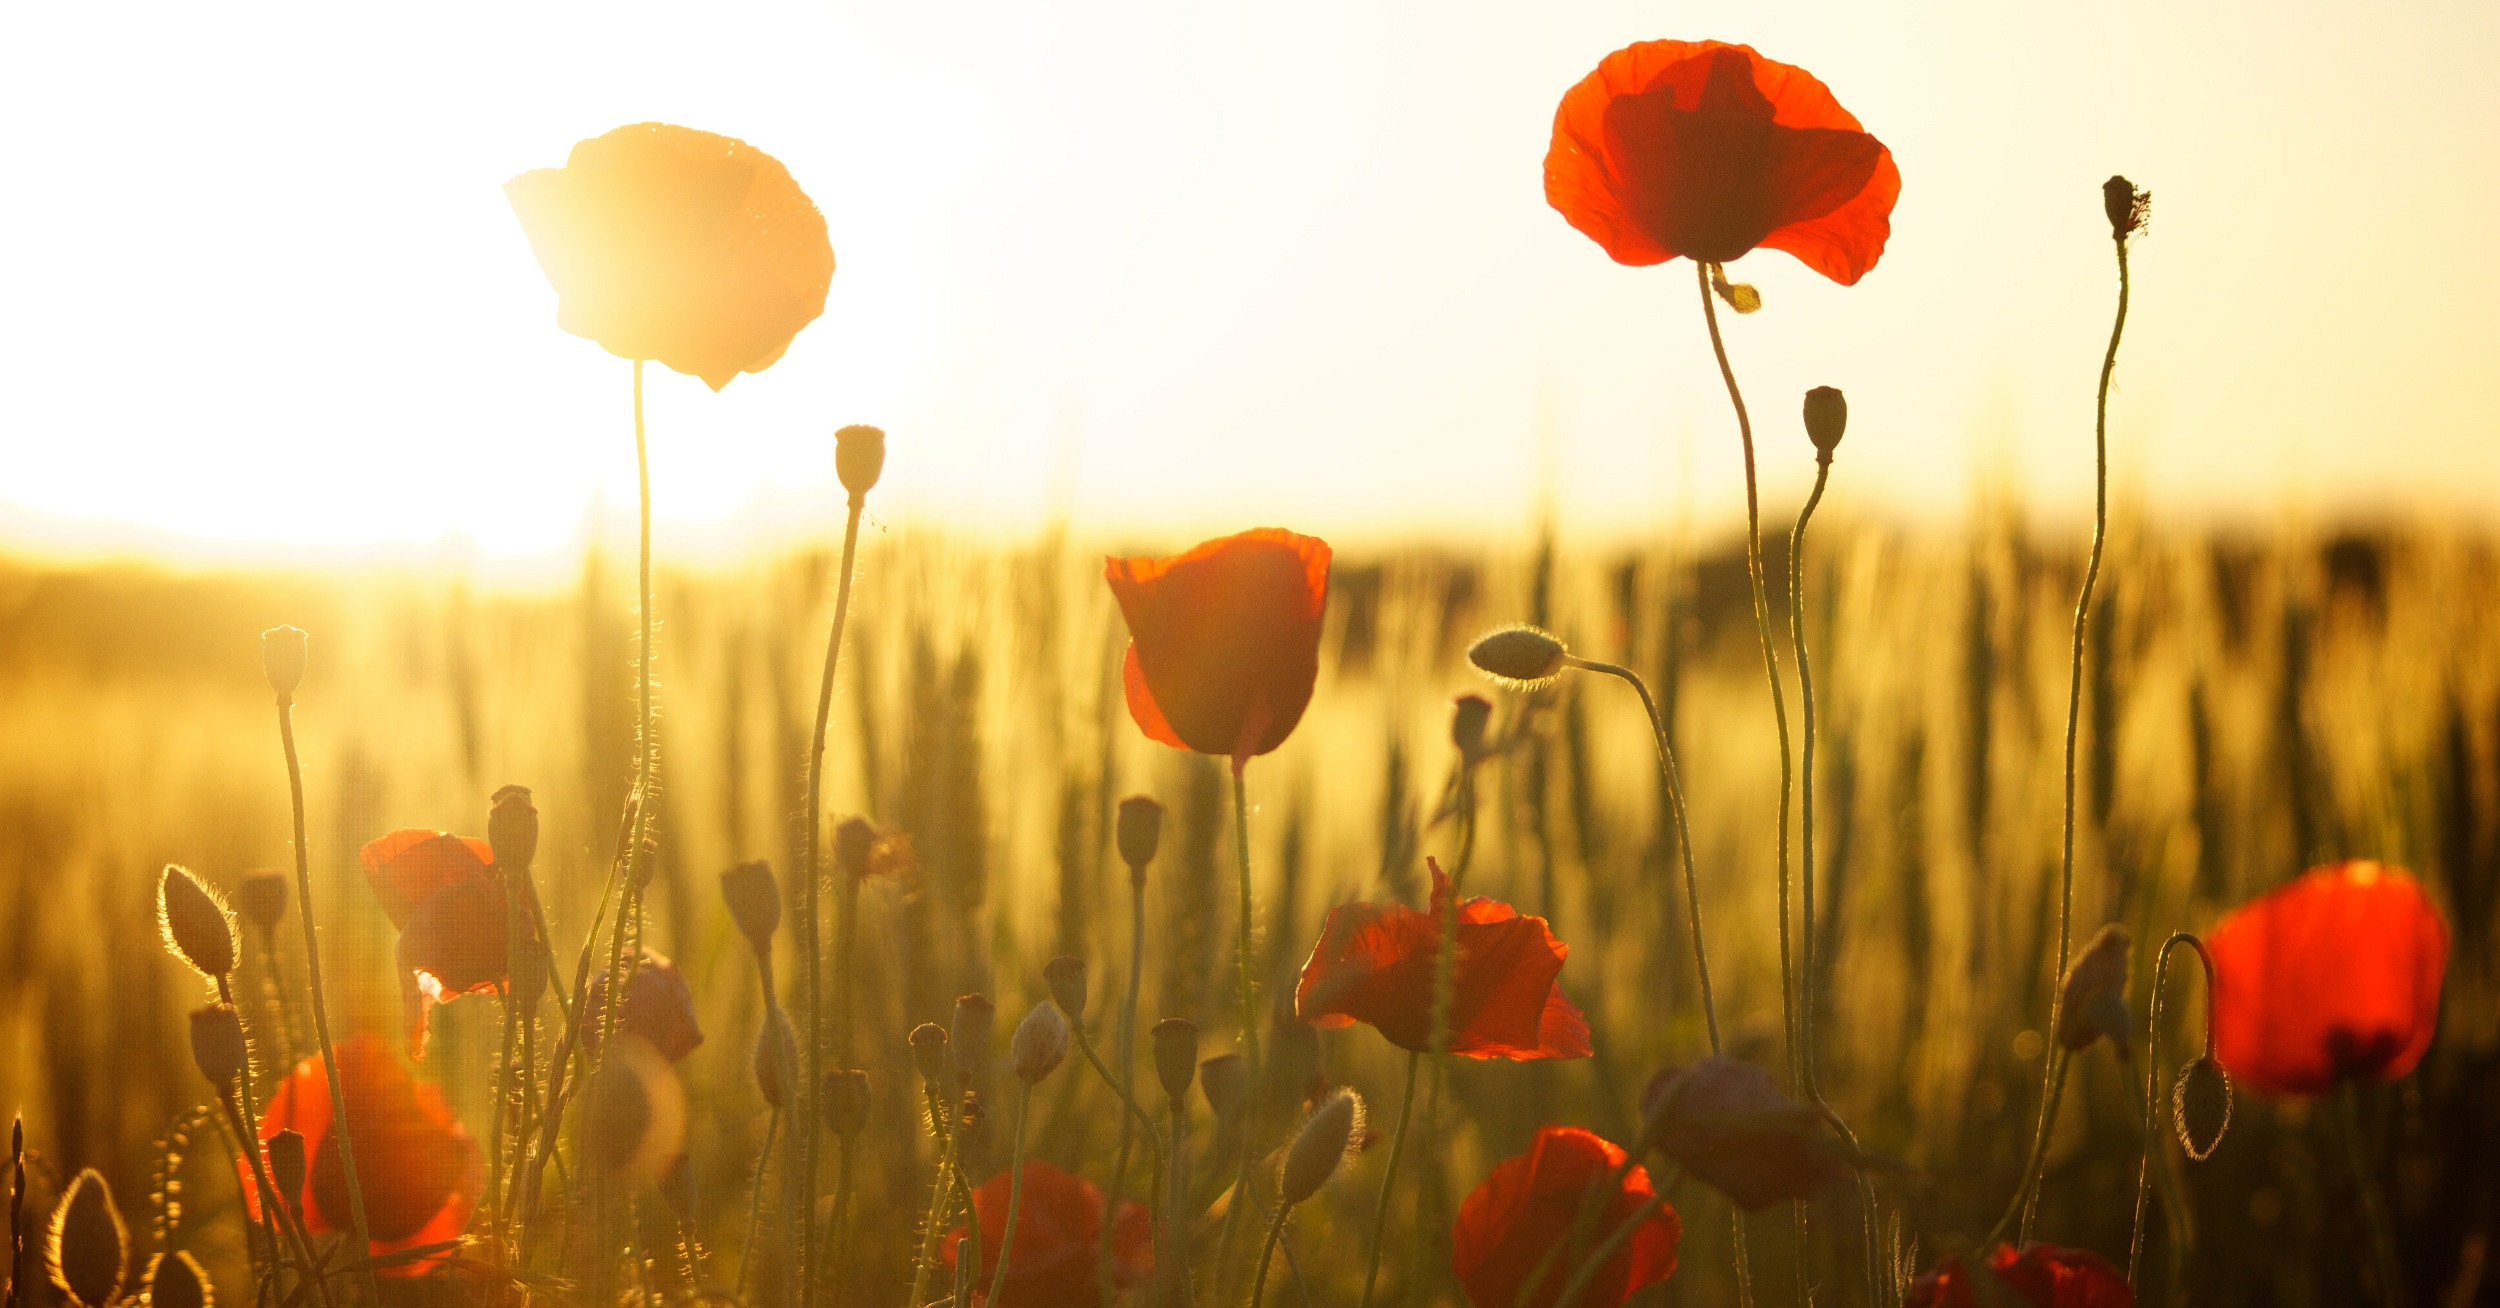 A field of poppies with sun behind